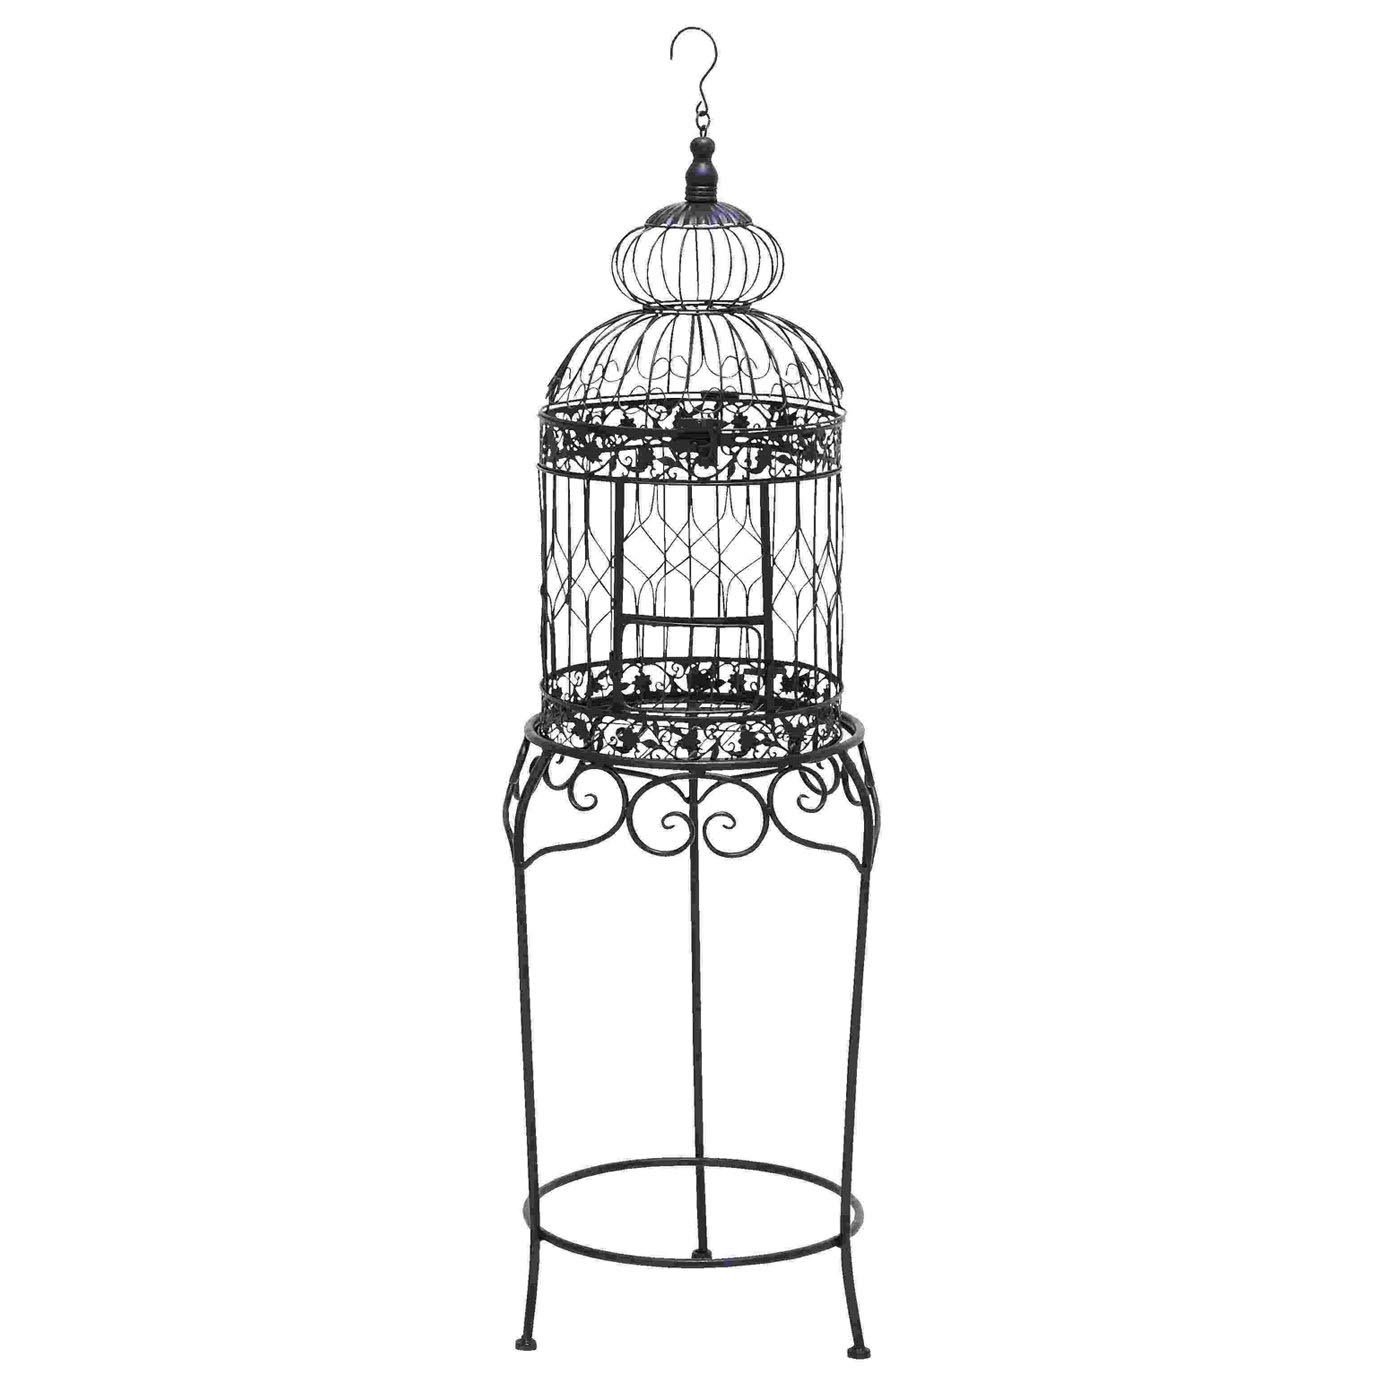 Bird Cage Stands Antique